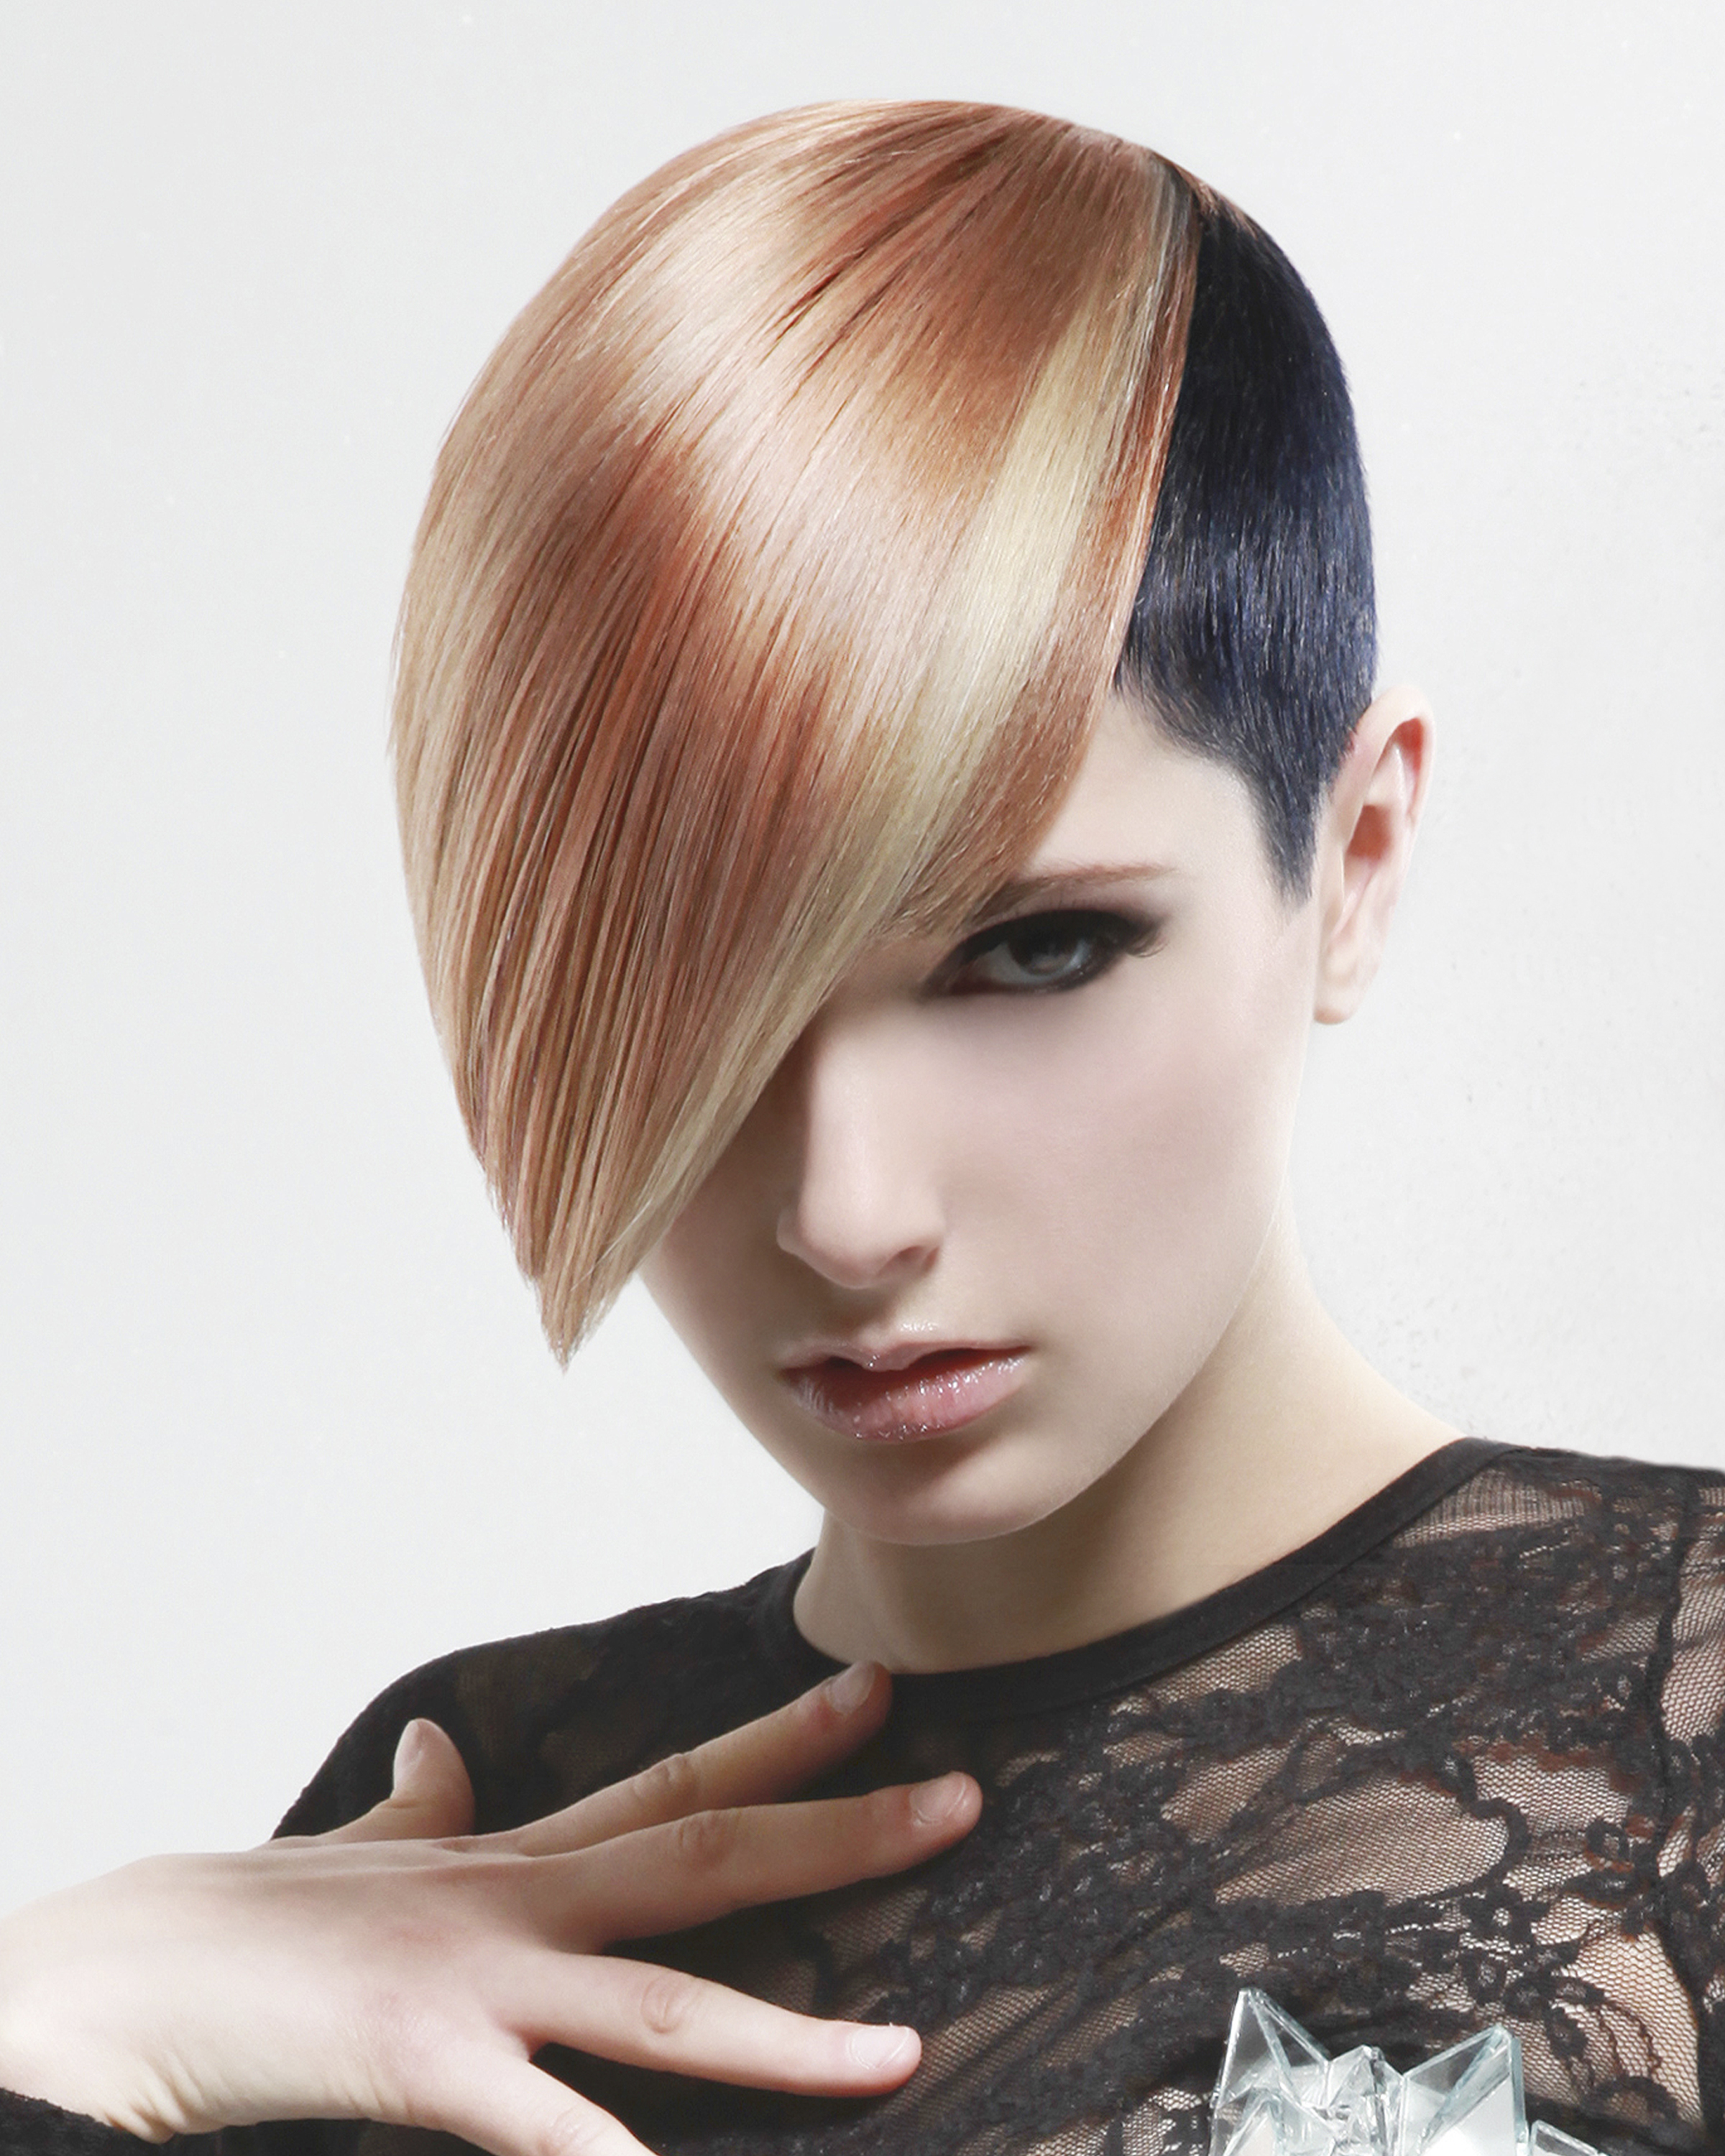 2011 finalist in the Haircolor category Martin Alarie